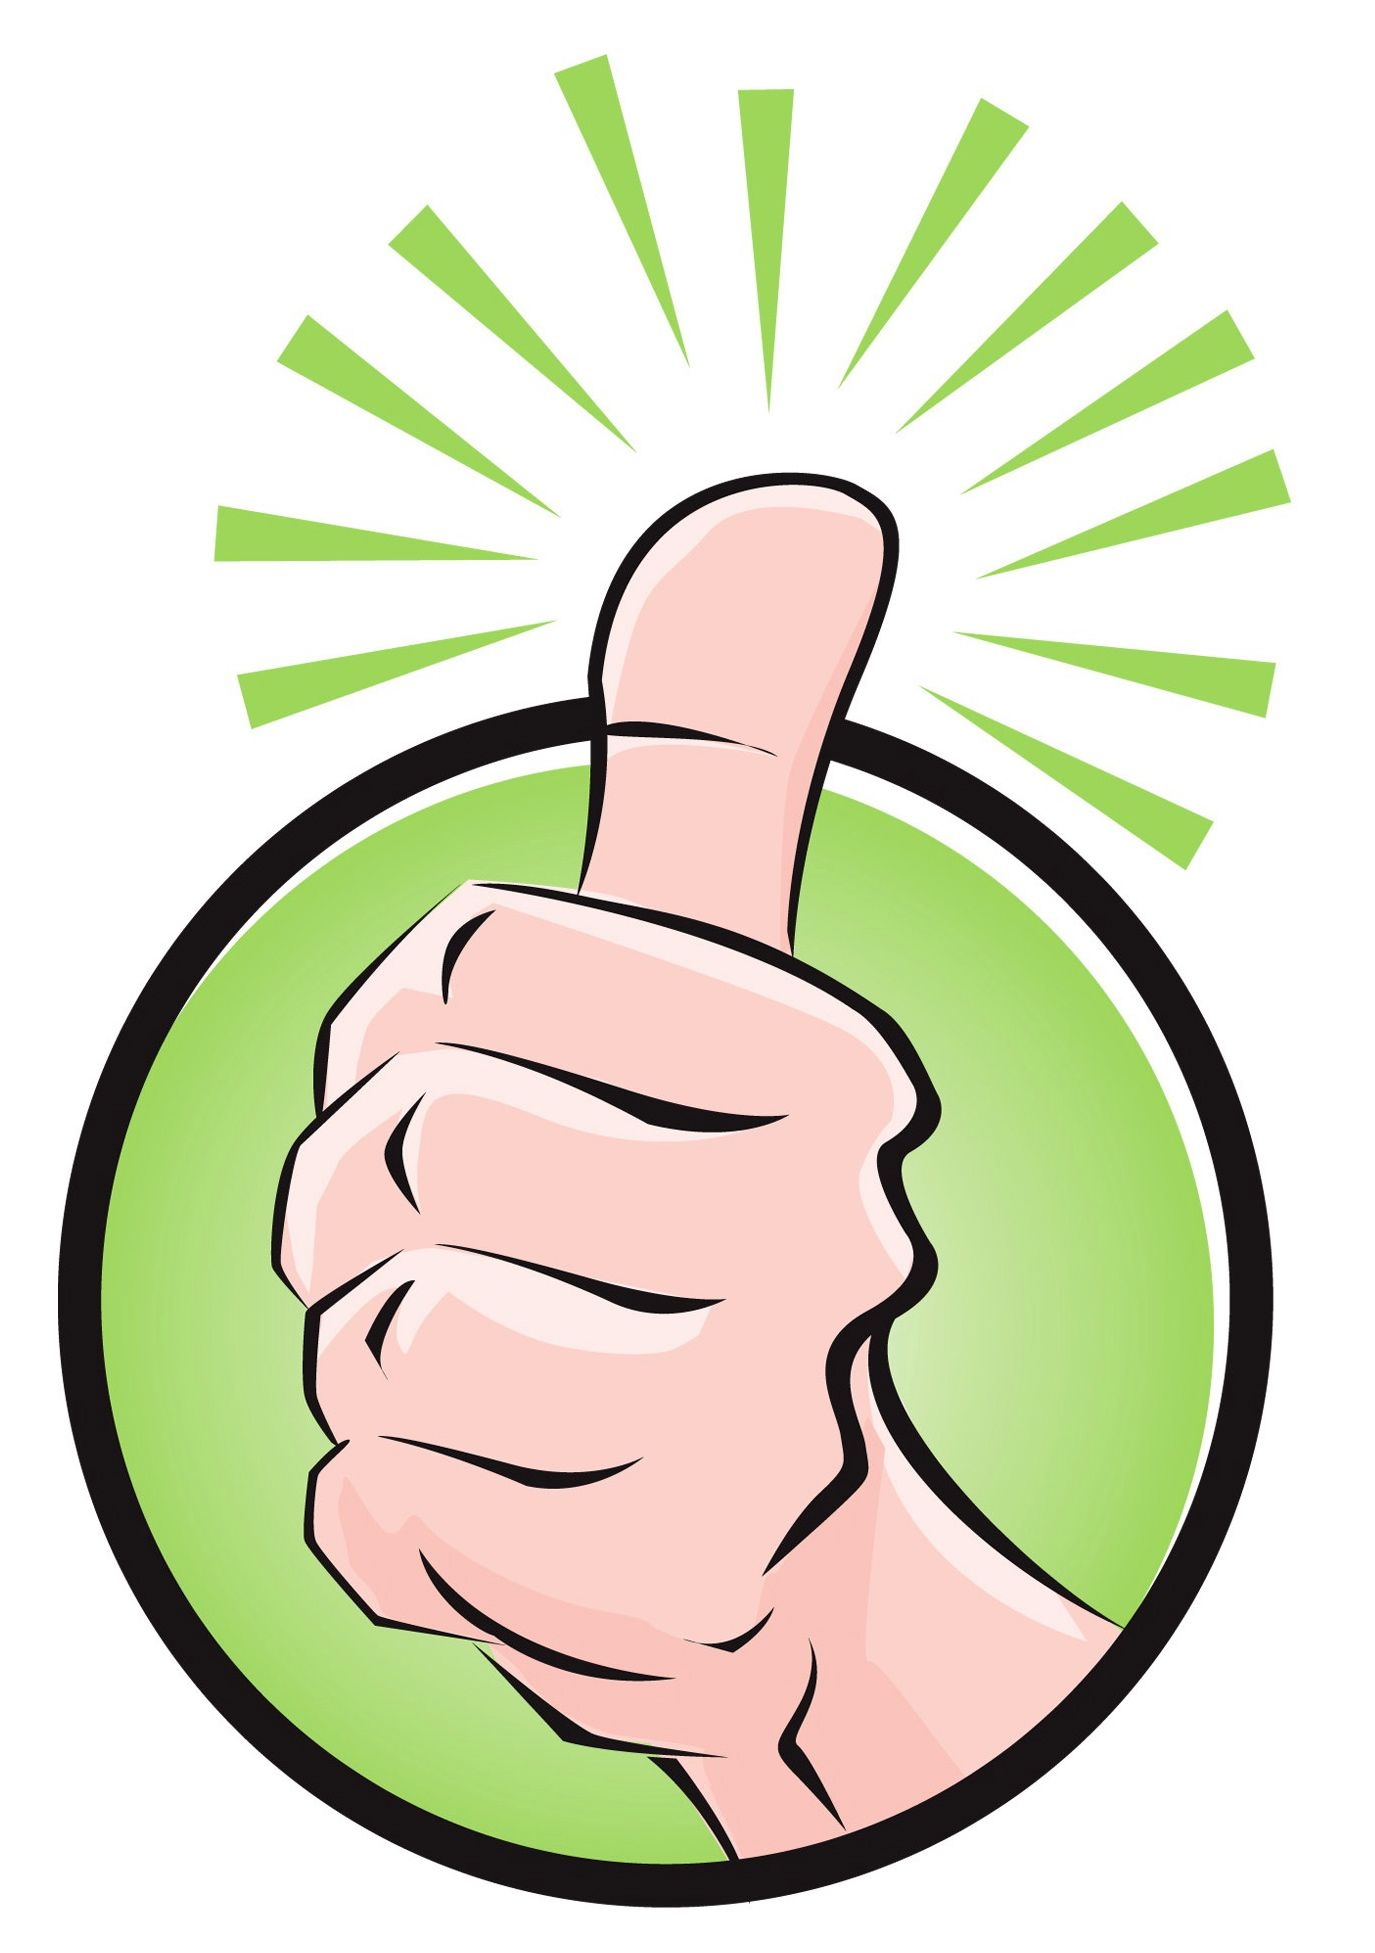 Thumbs up icon/logo.